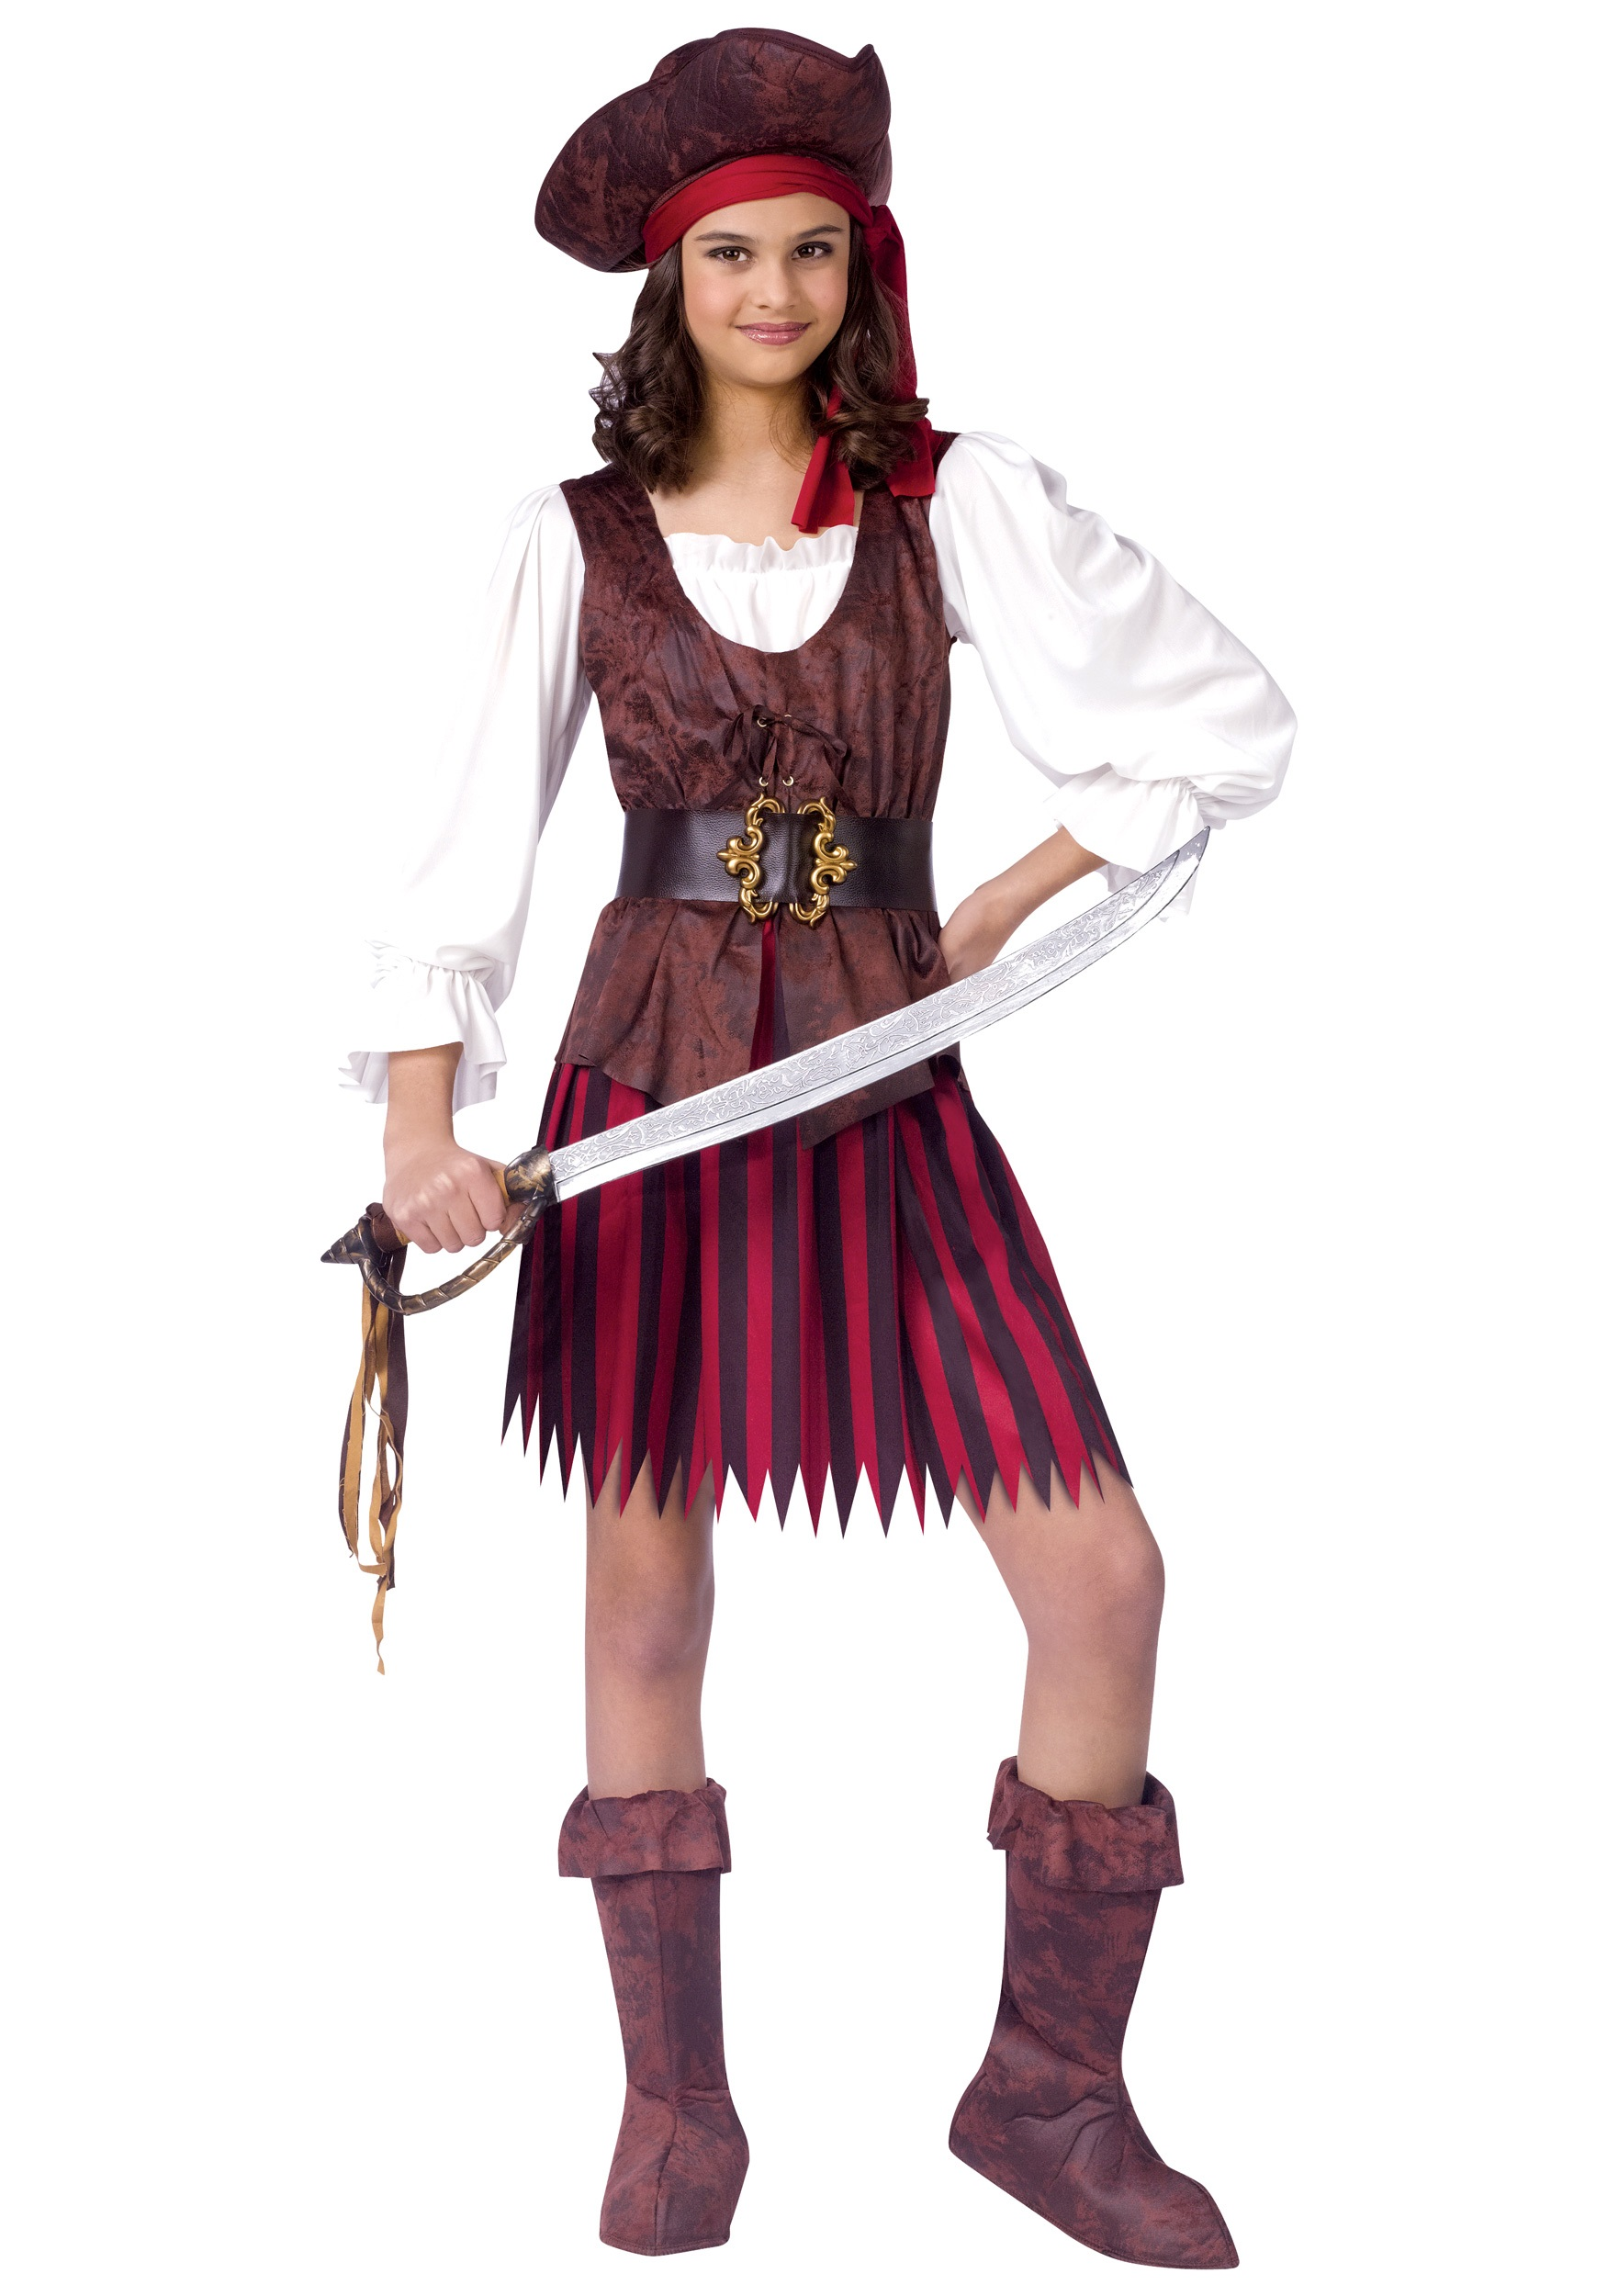 High Seas Pirate Girl Costume - photo#1